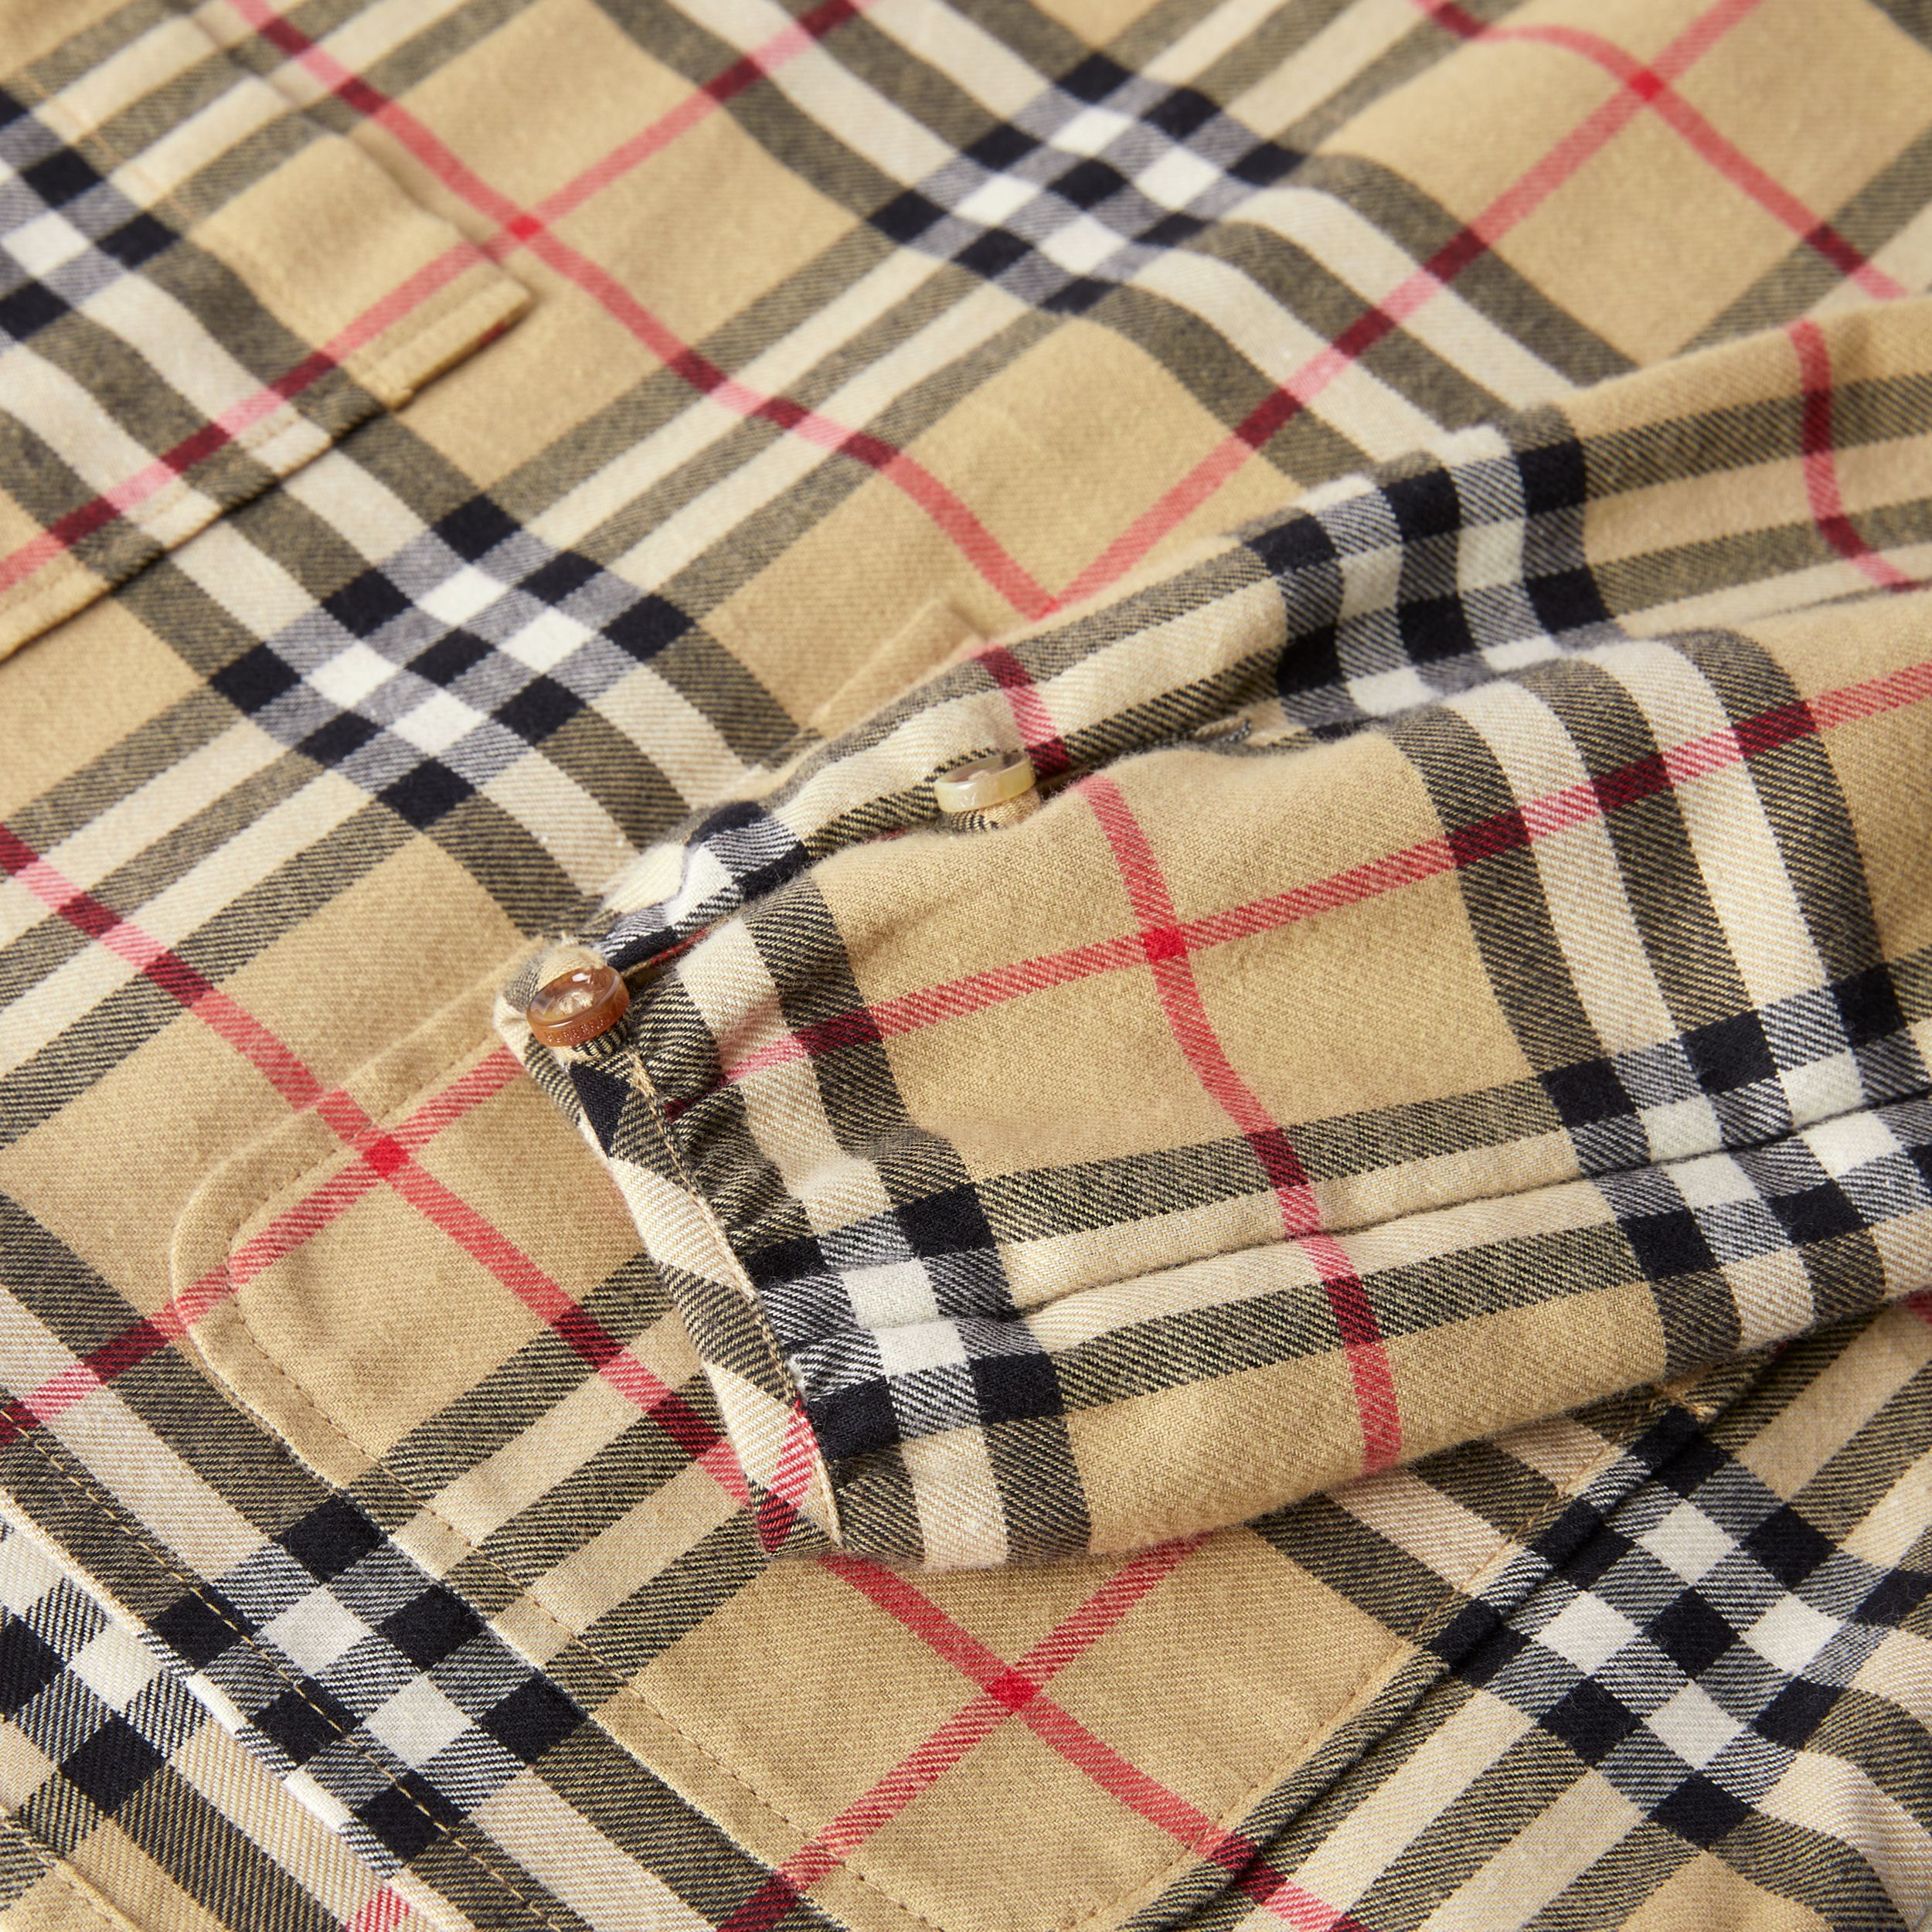 Peter Pan Collar Vintage Check Cotton Blouse | Burberry Australia - 2